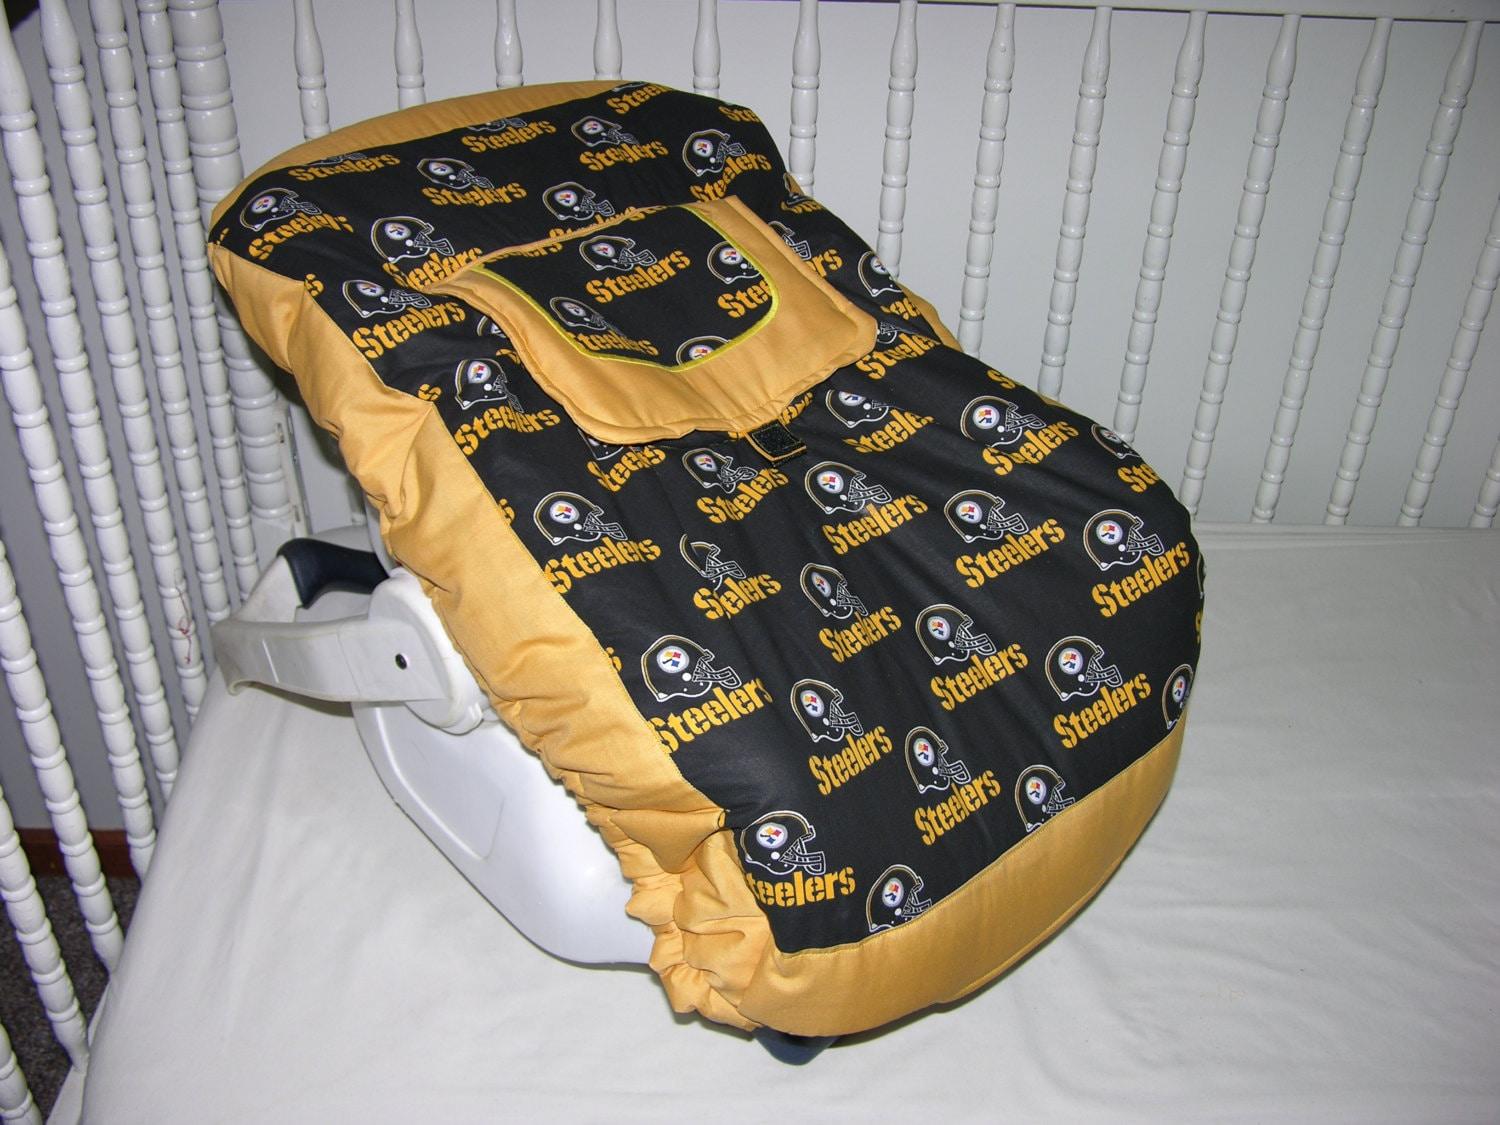 new infant carrier cover m w pittsburgh steelers fabric. Black Bedroom Furniture Sets. Home Design Ideas